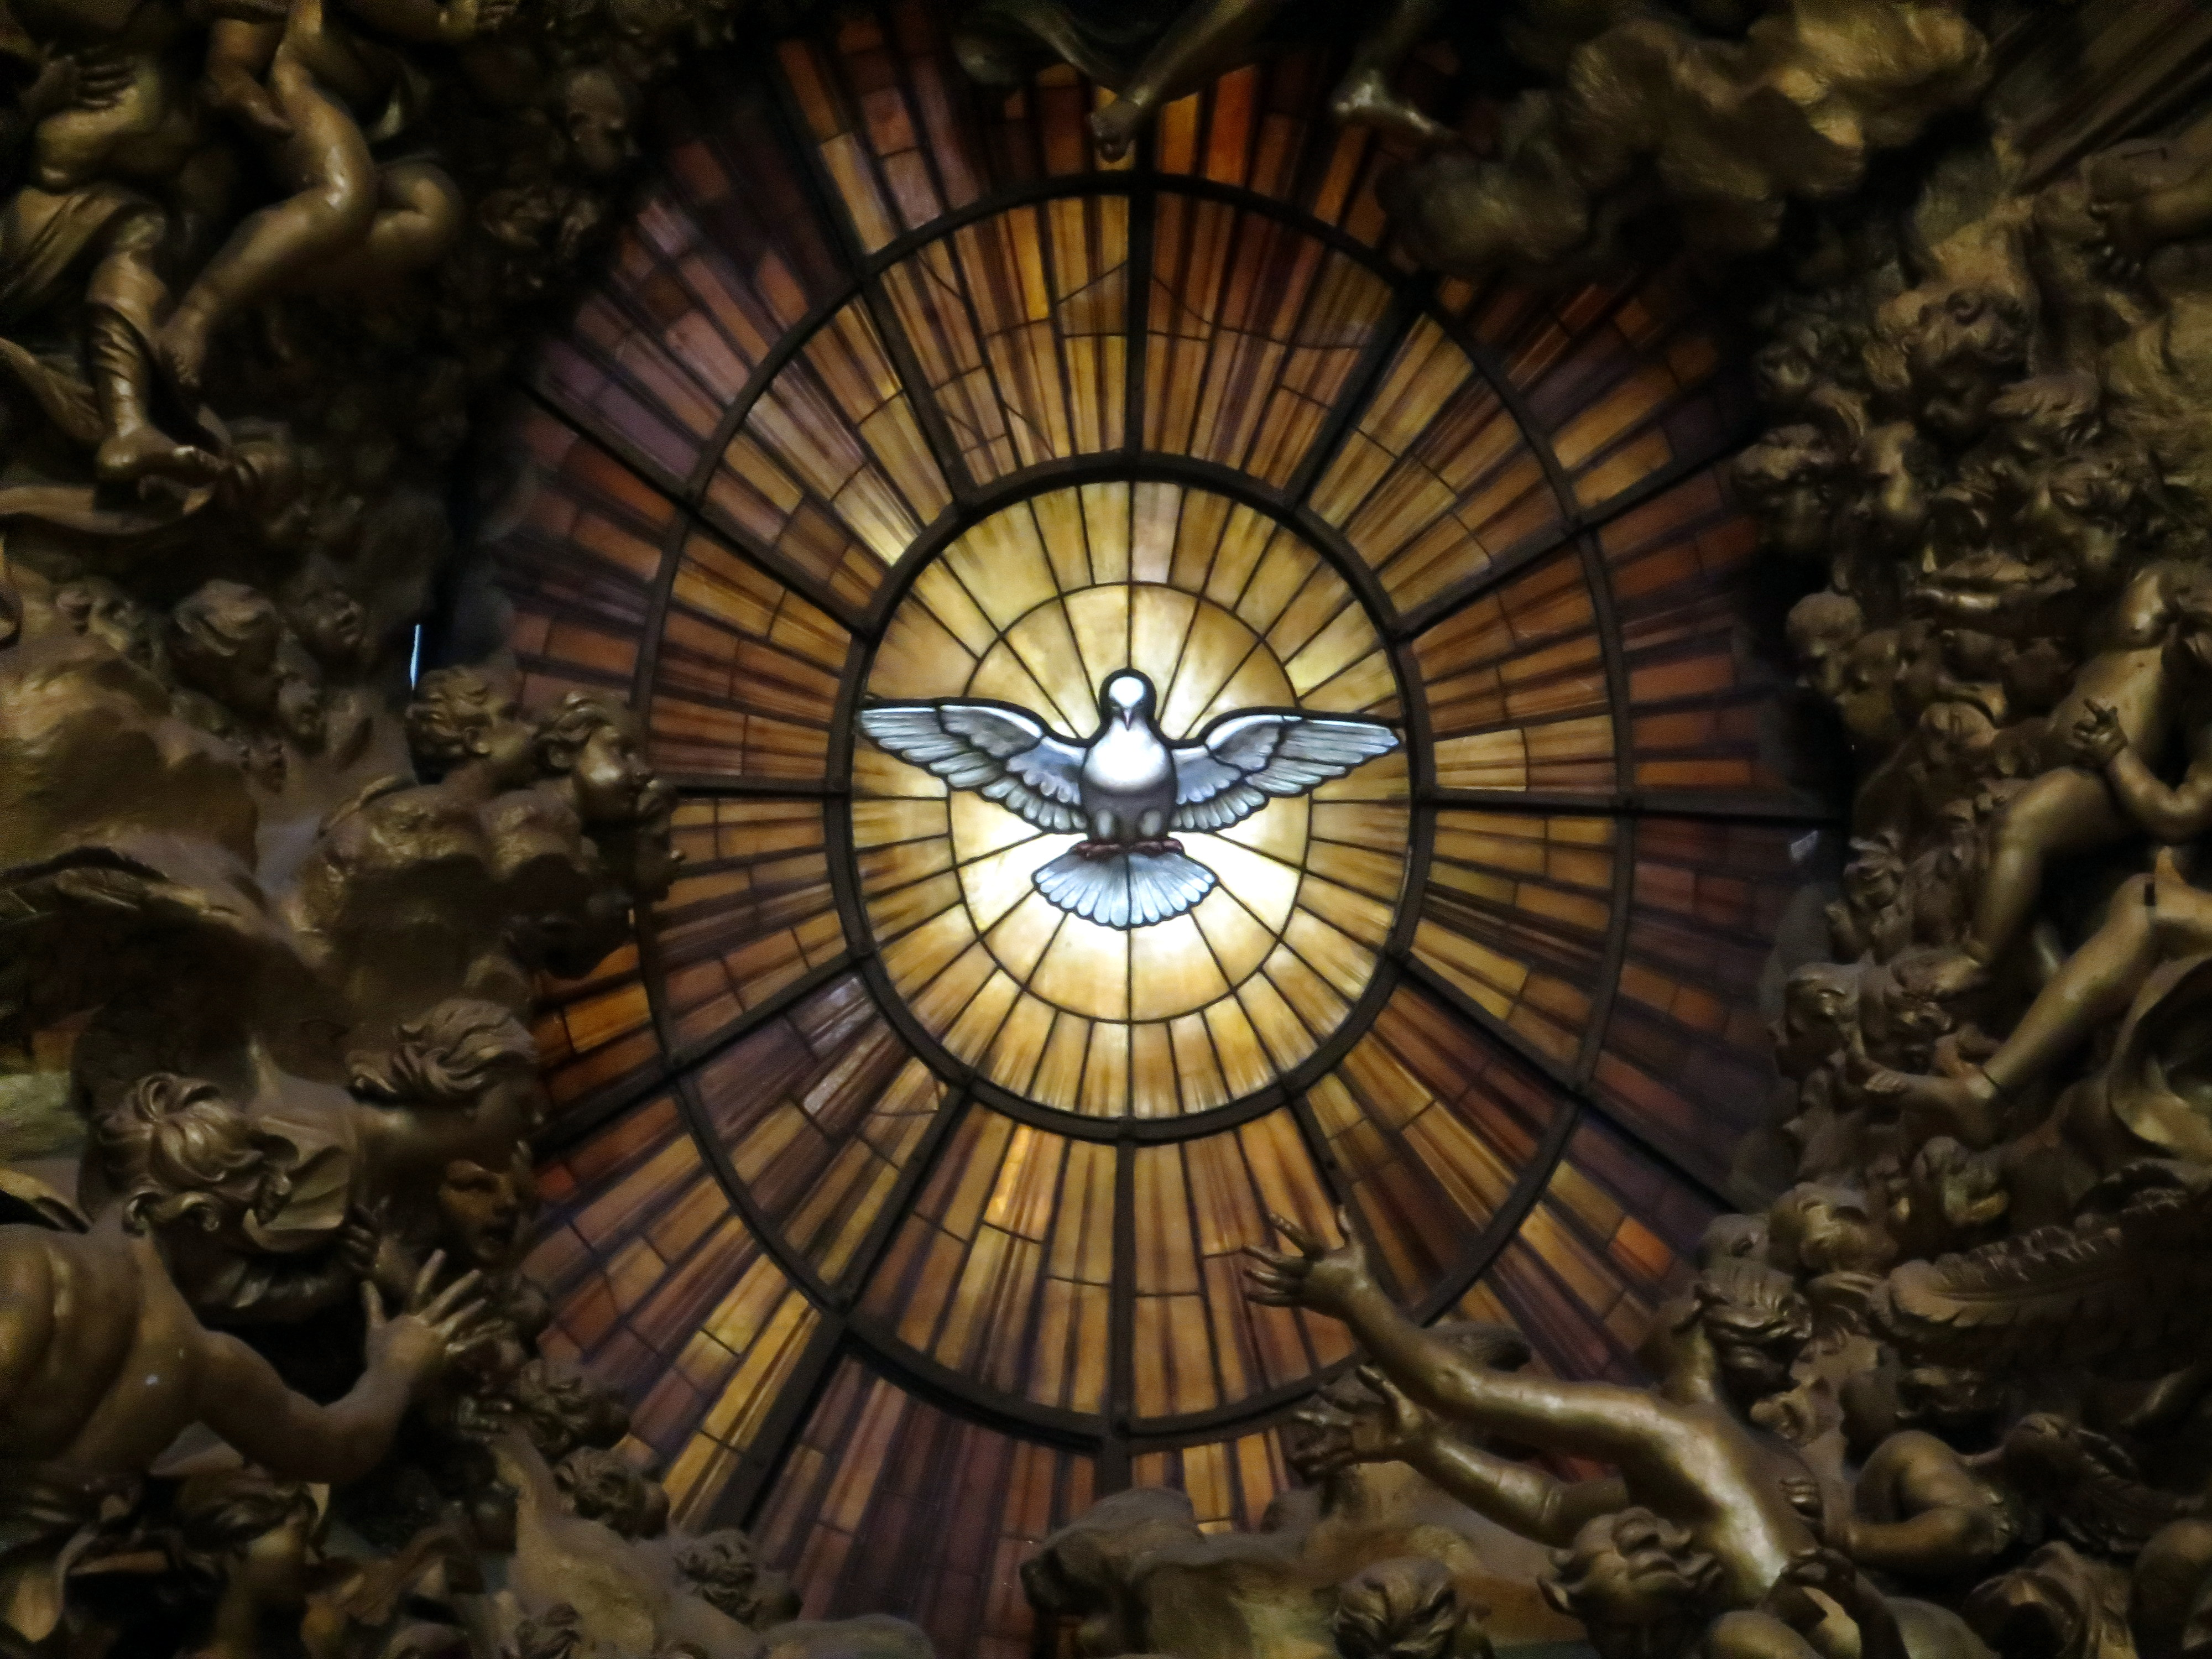 Dove of the Holy Spirit in Saint Peter's Basilica